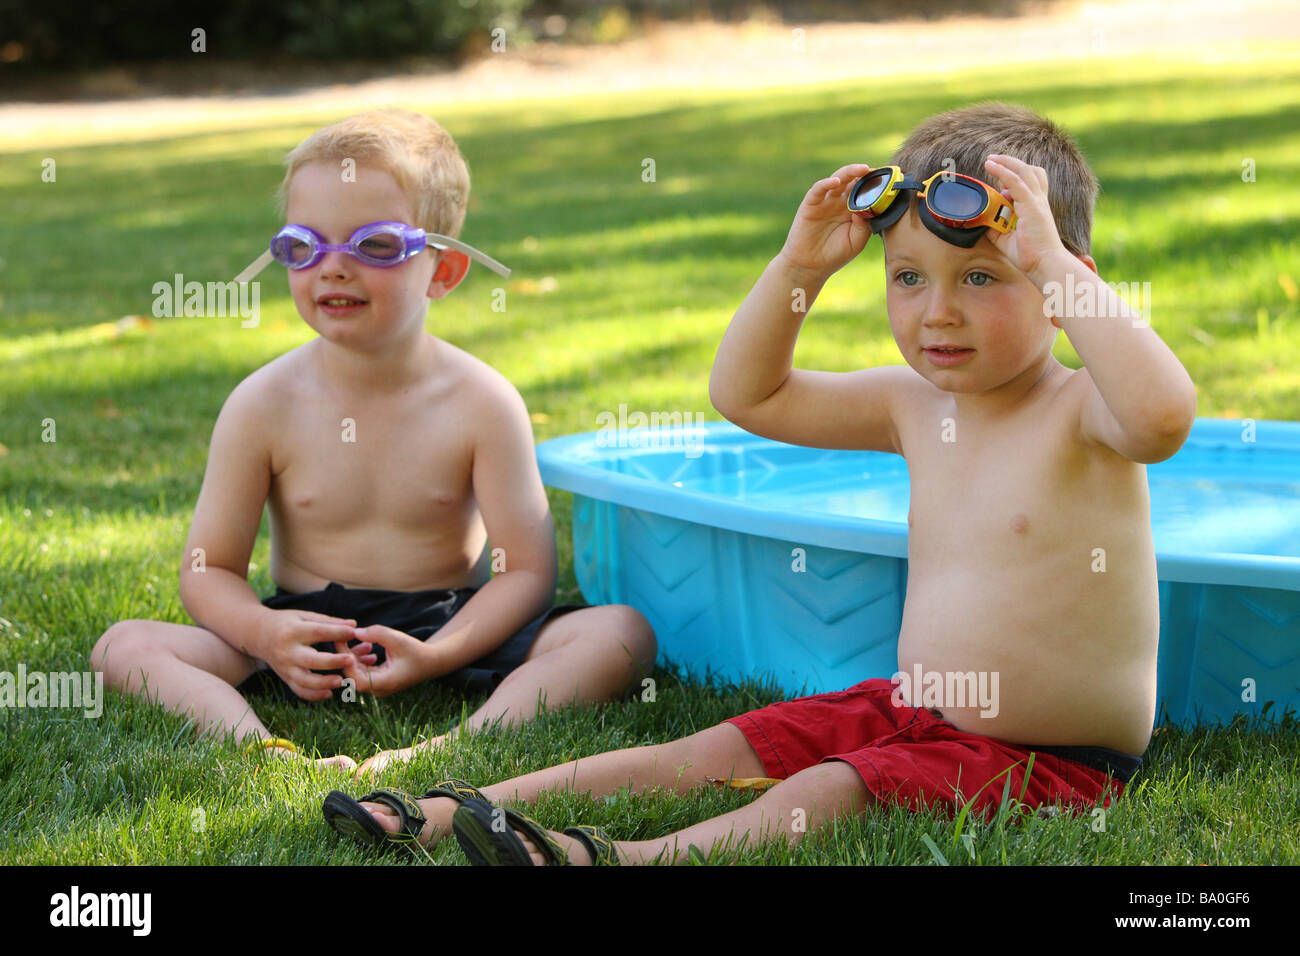 Two young boys sitting outside with goggles - Stock Image